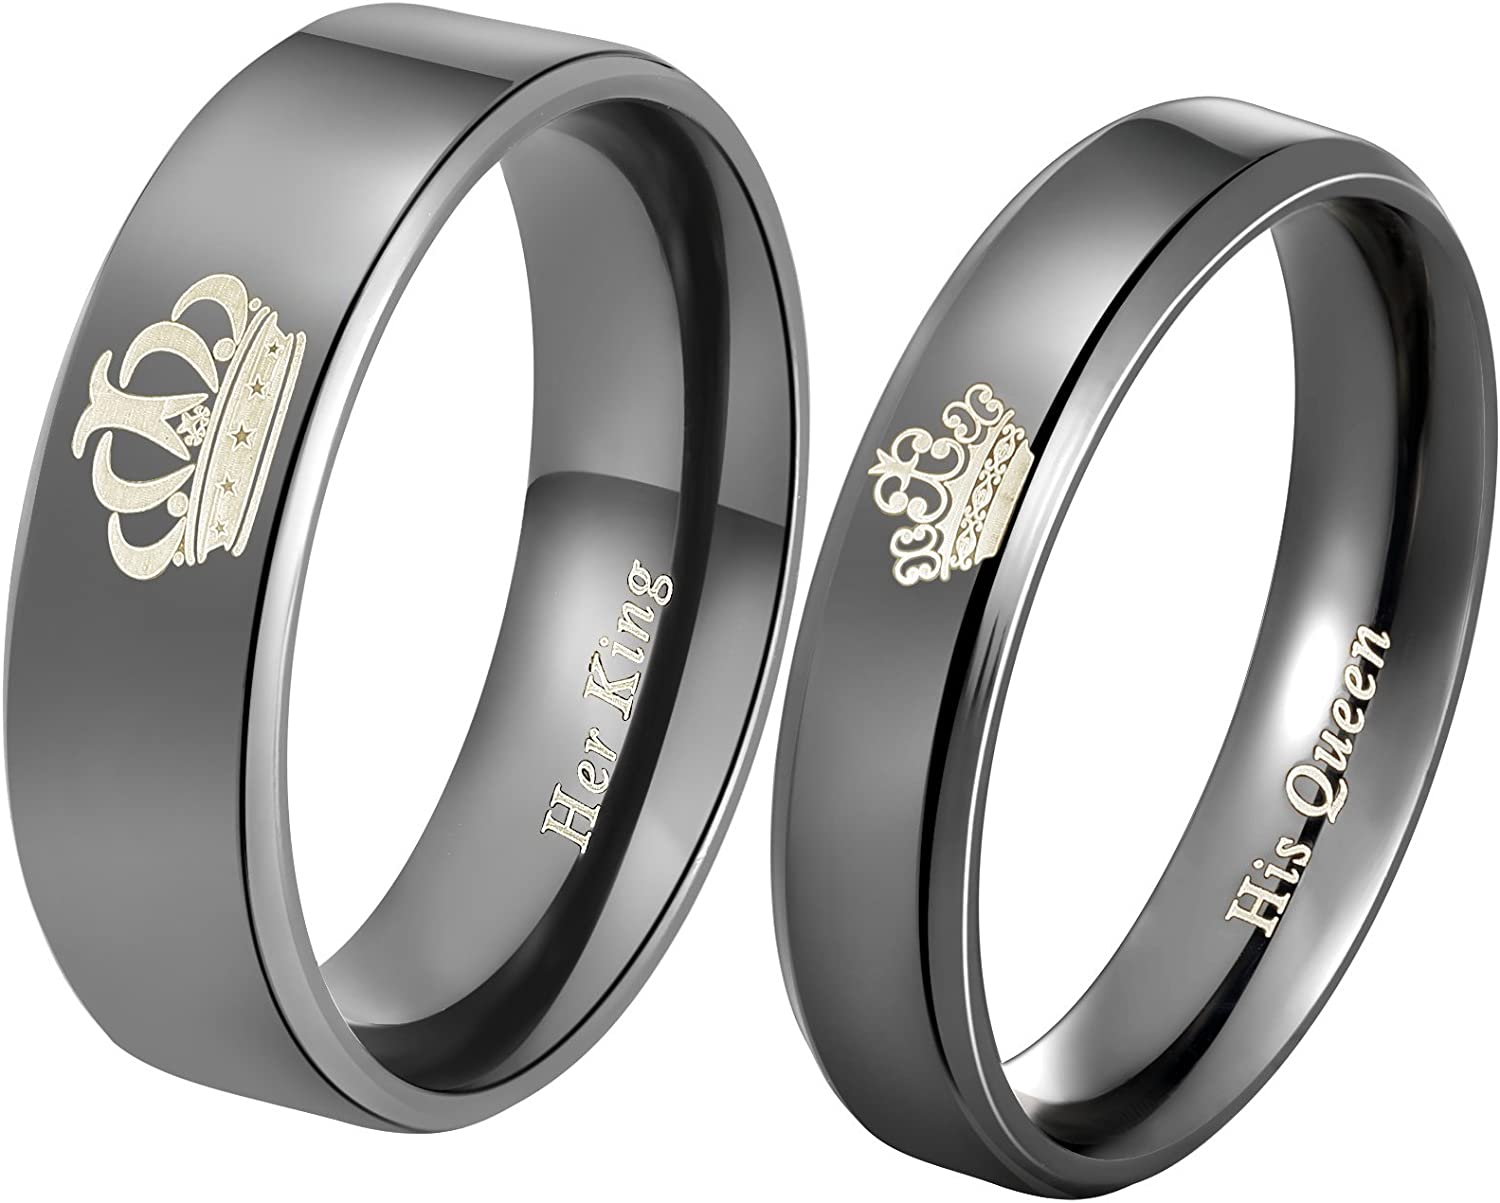 """Aegean Jewelry """"King and Queen"""" Love Style Wedding Band Set Engagement Promise Anniversary Couple Ring"""